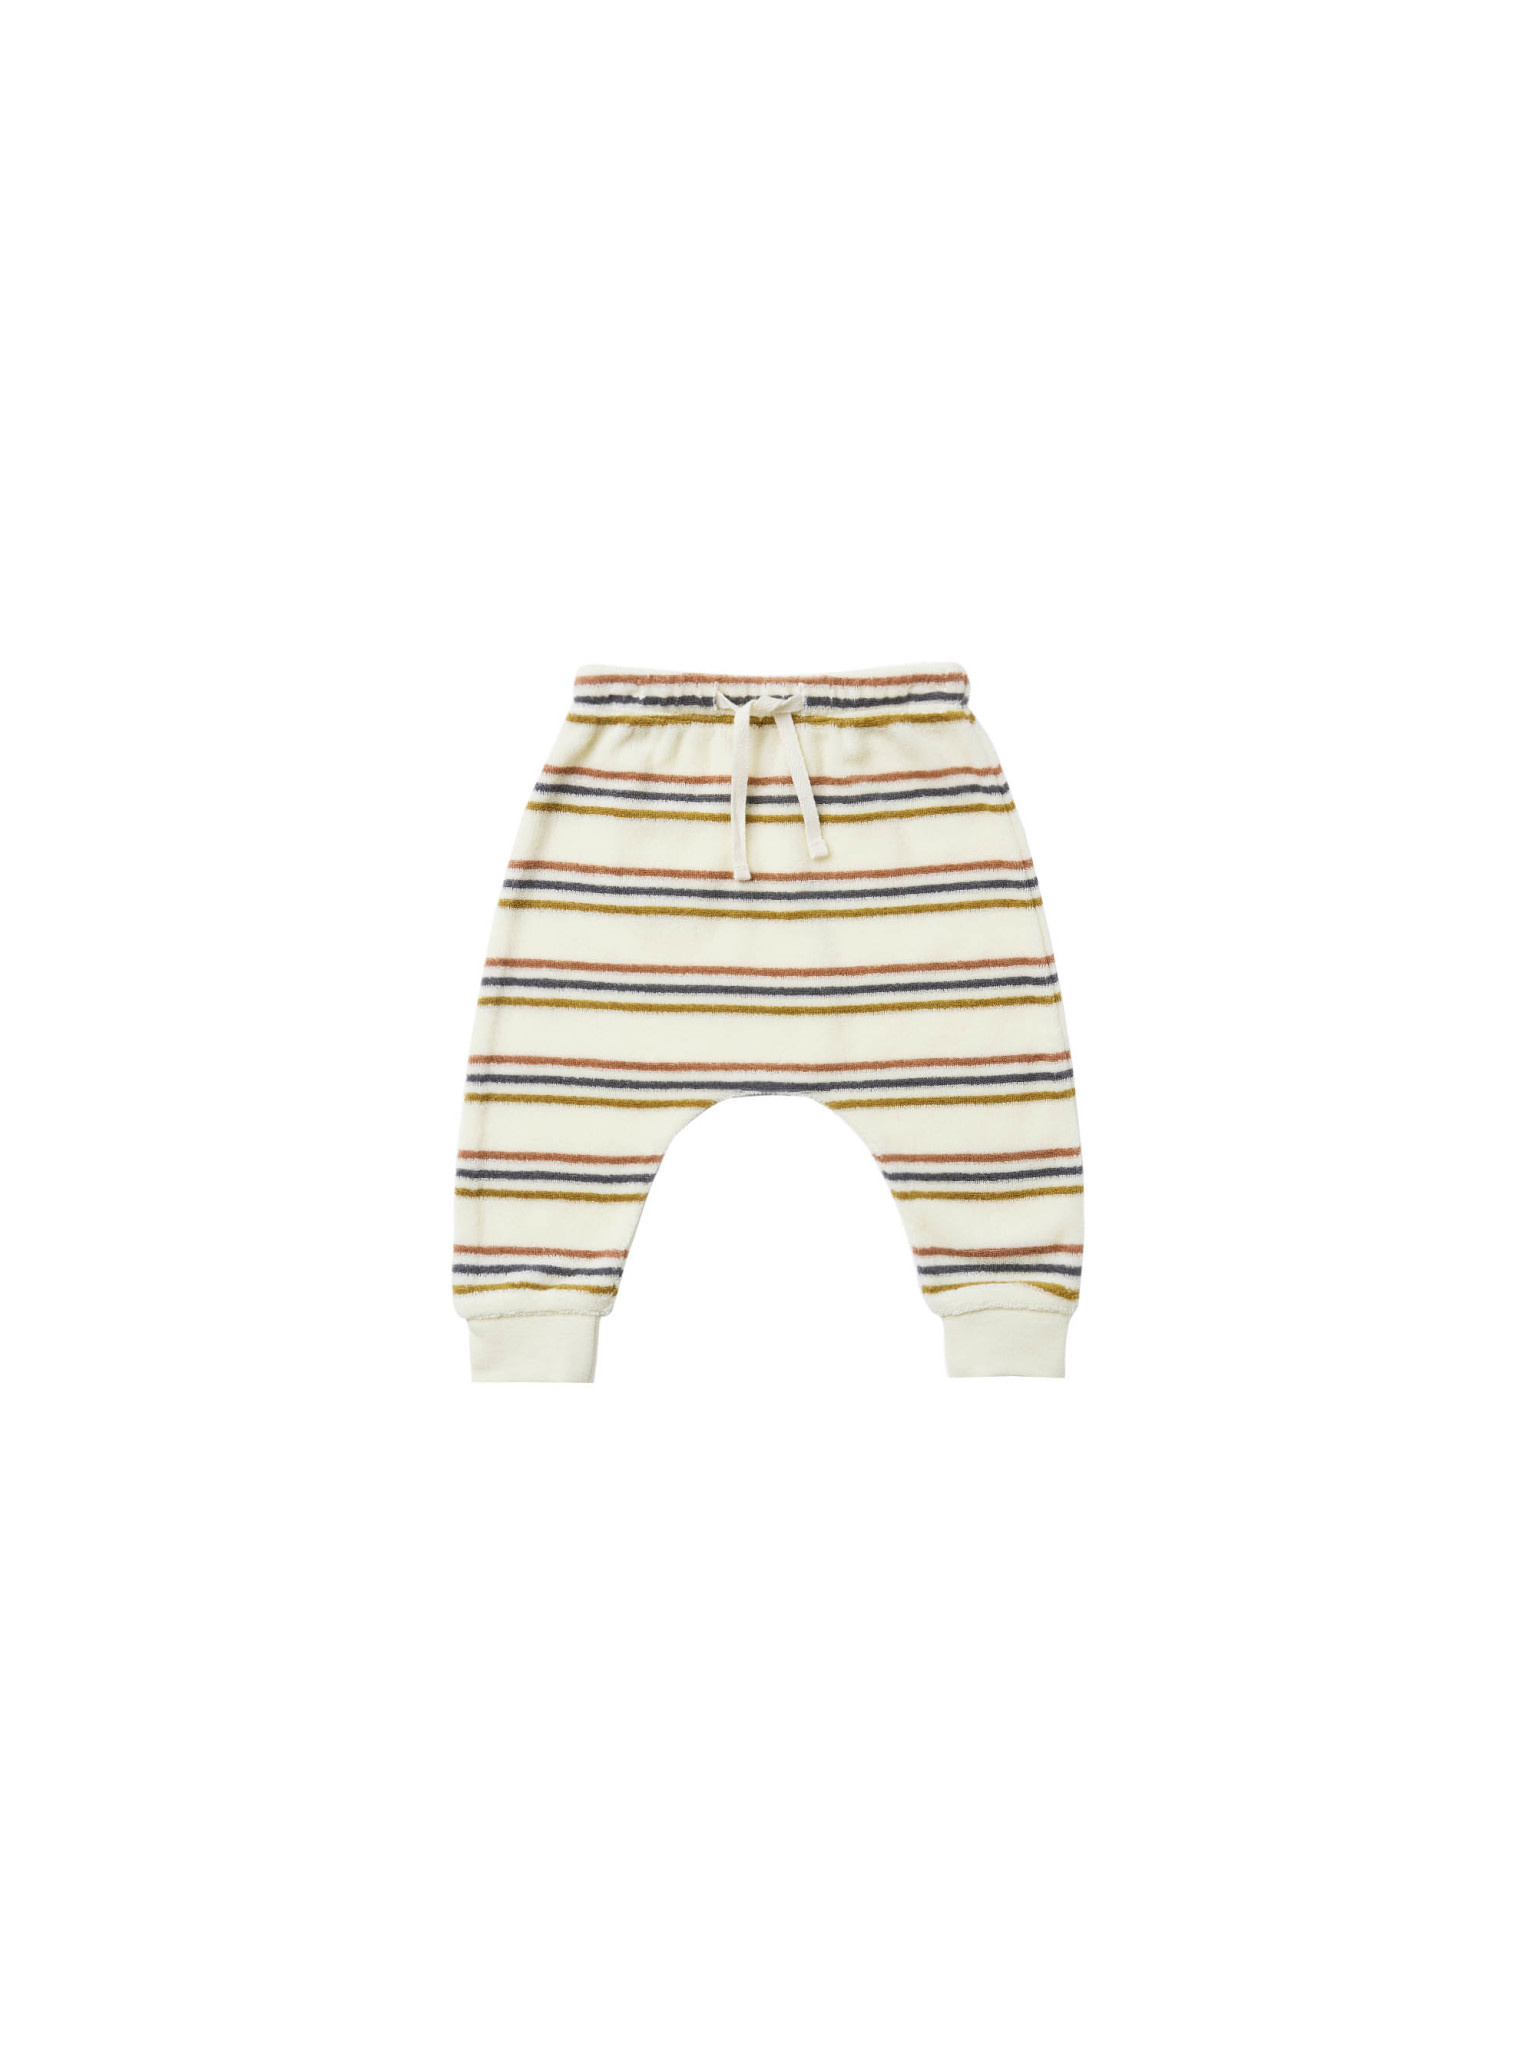 Quincy Mae Quincy Mae Terry Tee & Pant Set